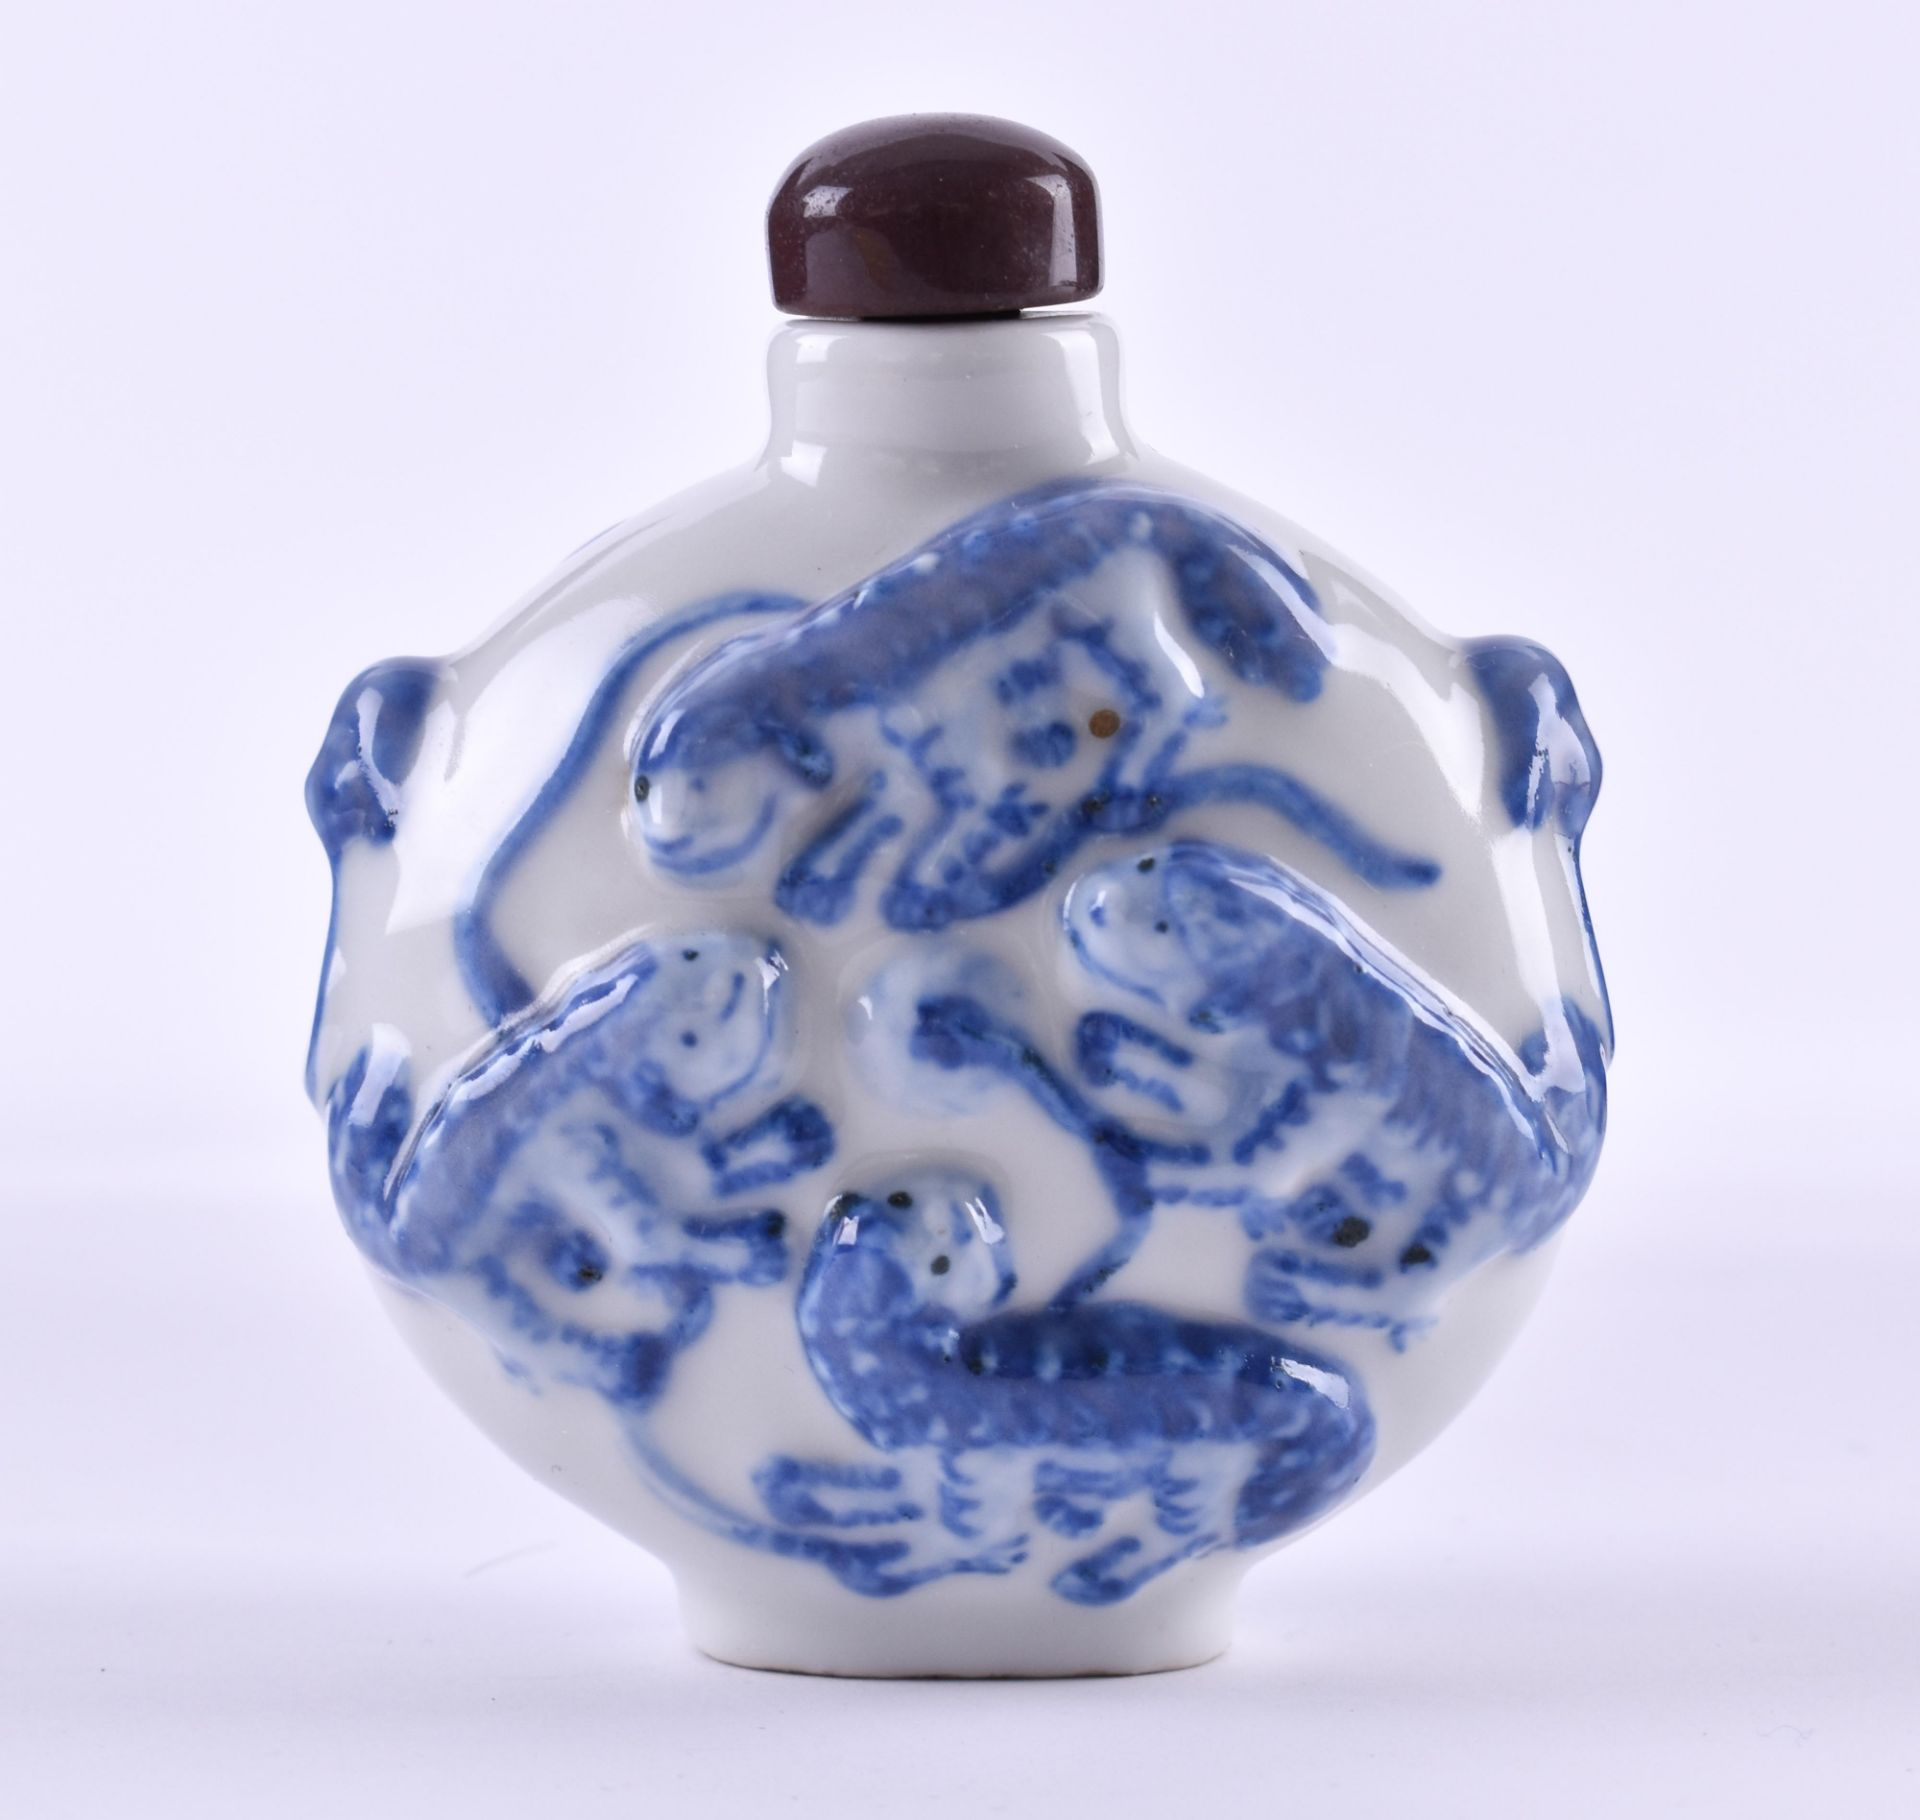 Snuffbottle China Qing dynasty - Image 3 of 5